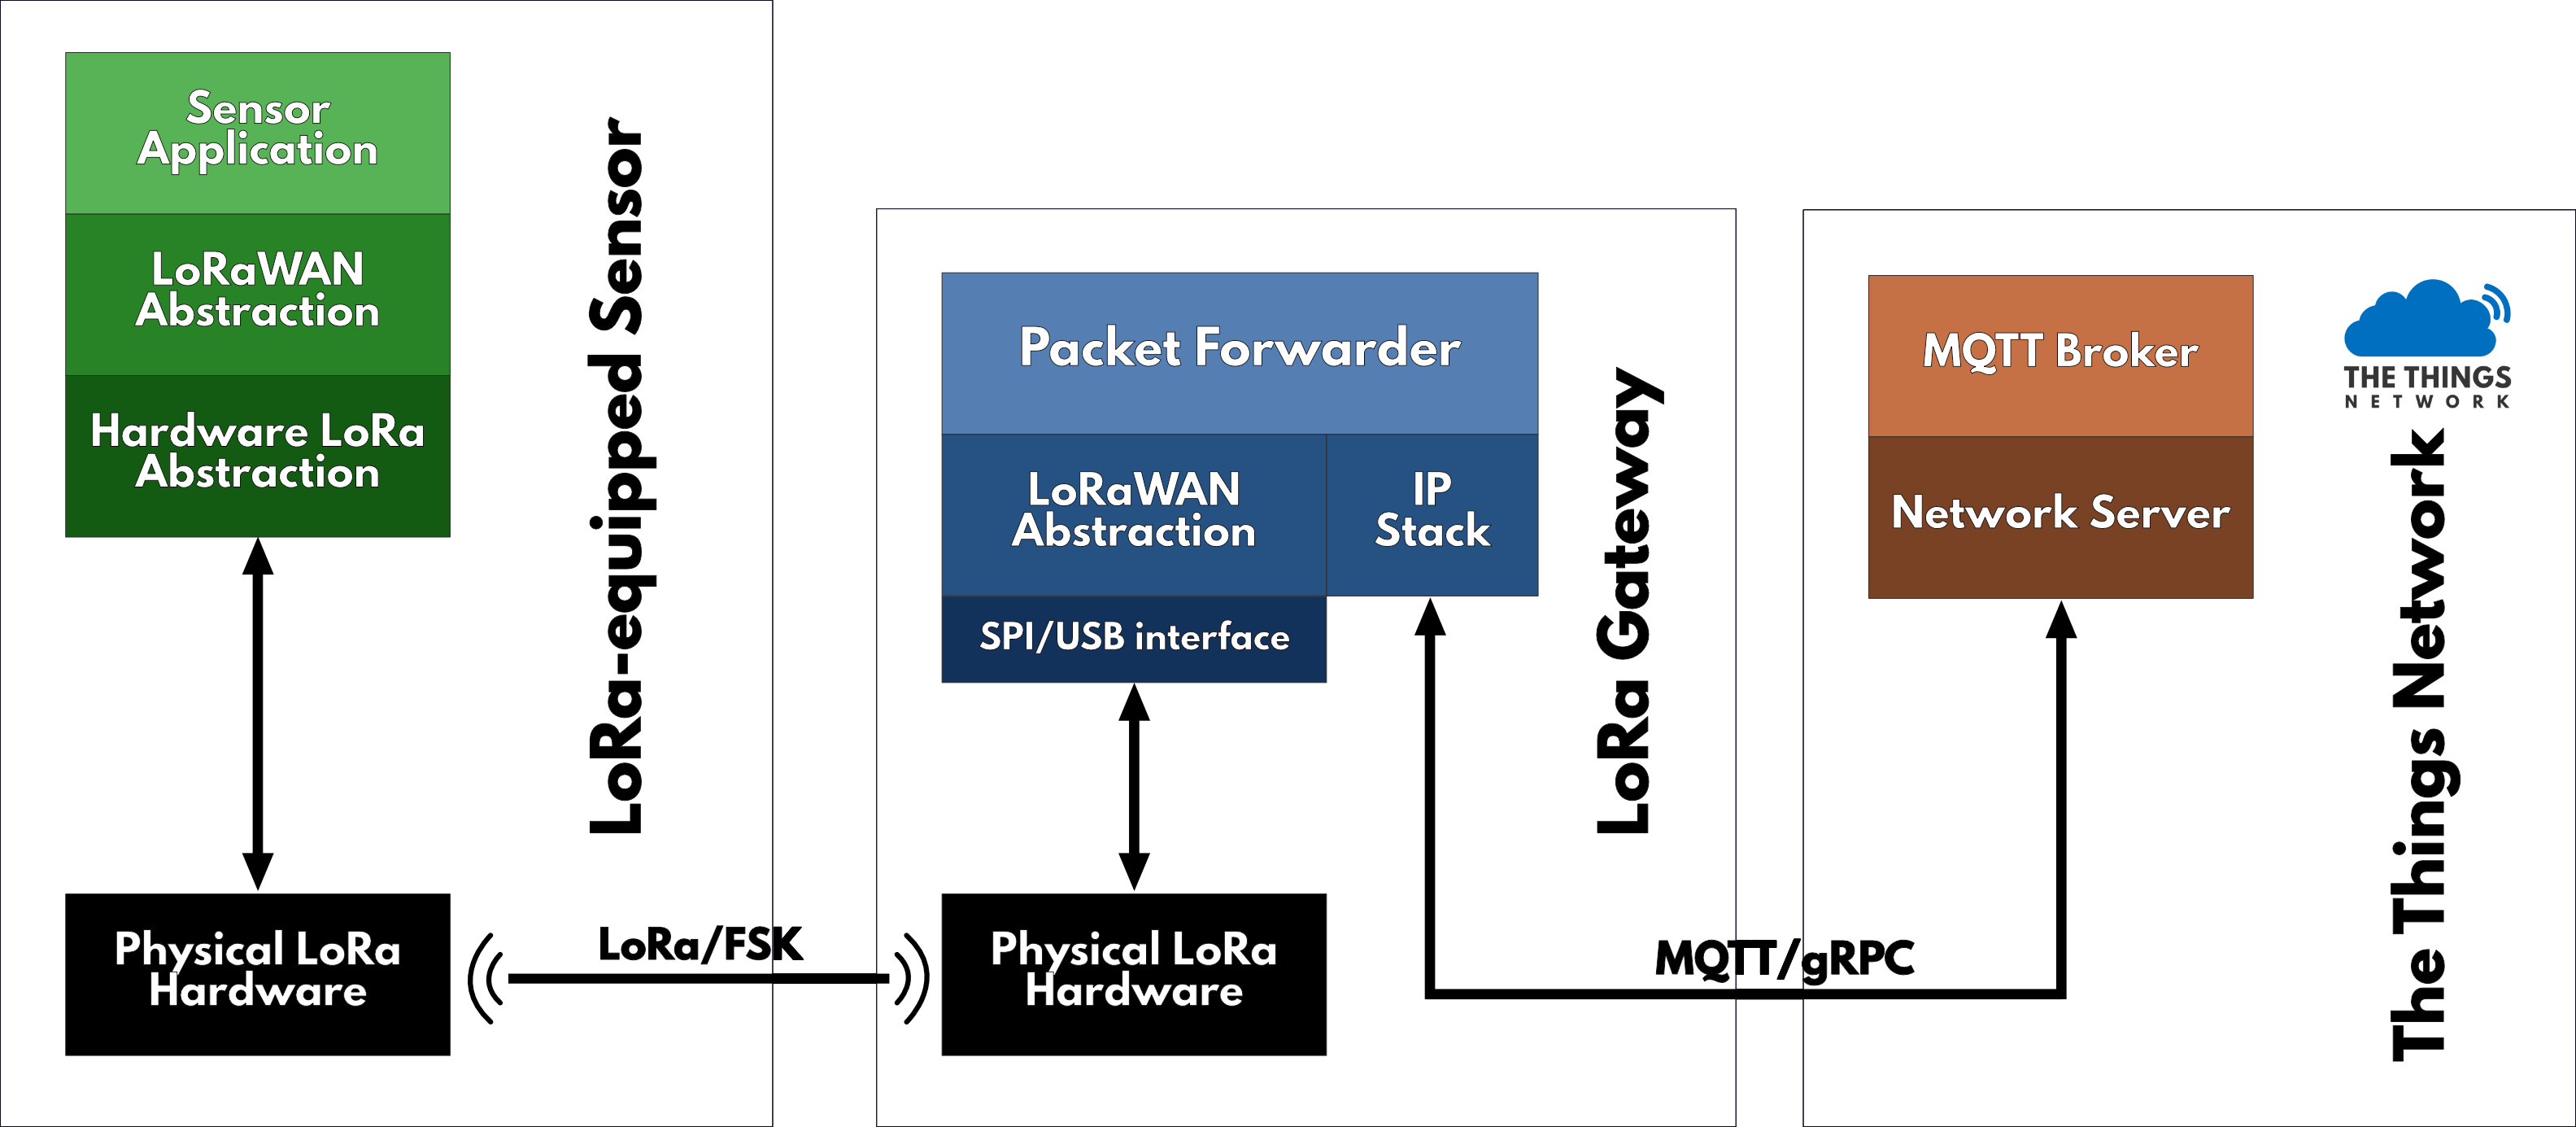 Packet-Forwarder